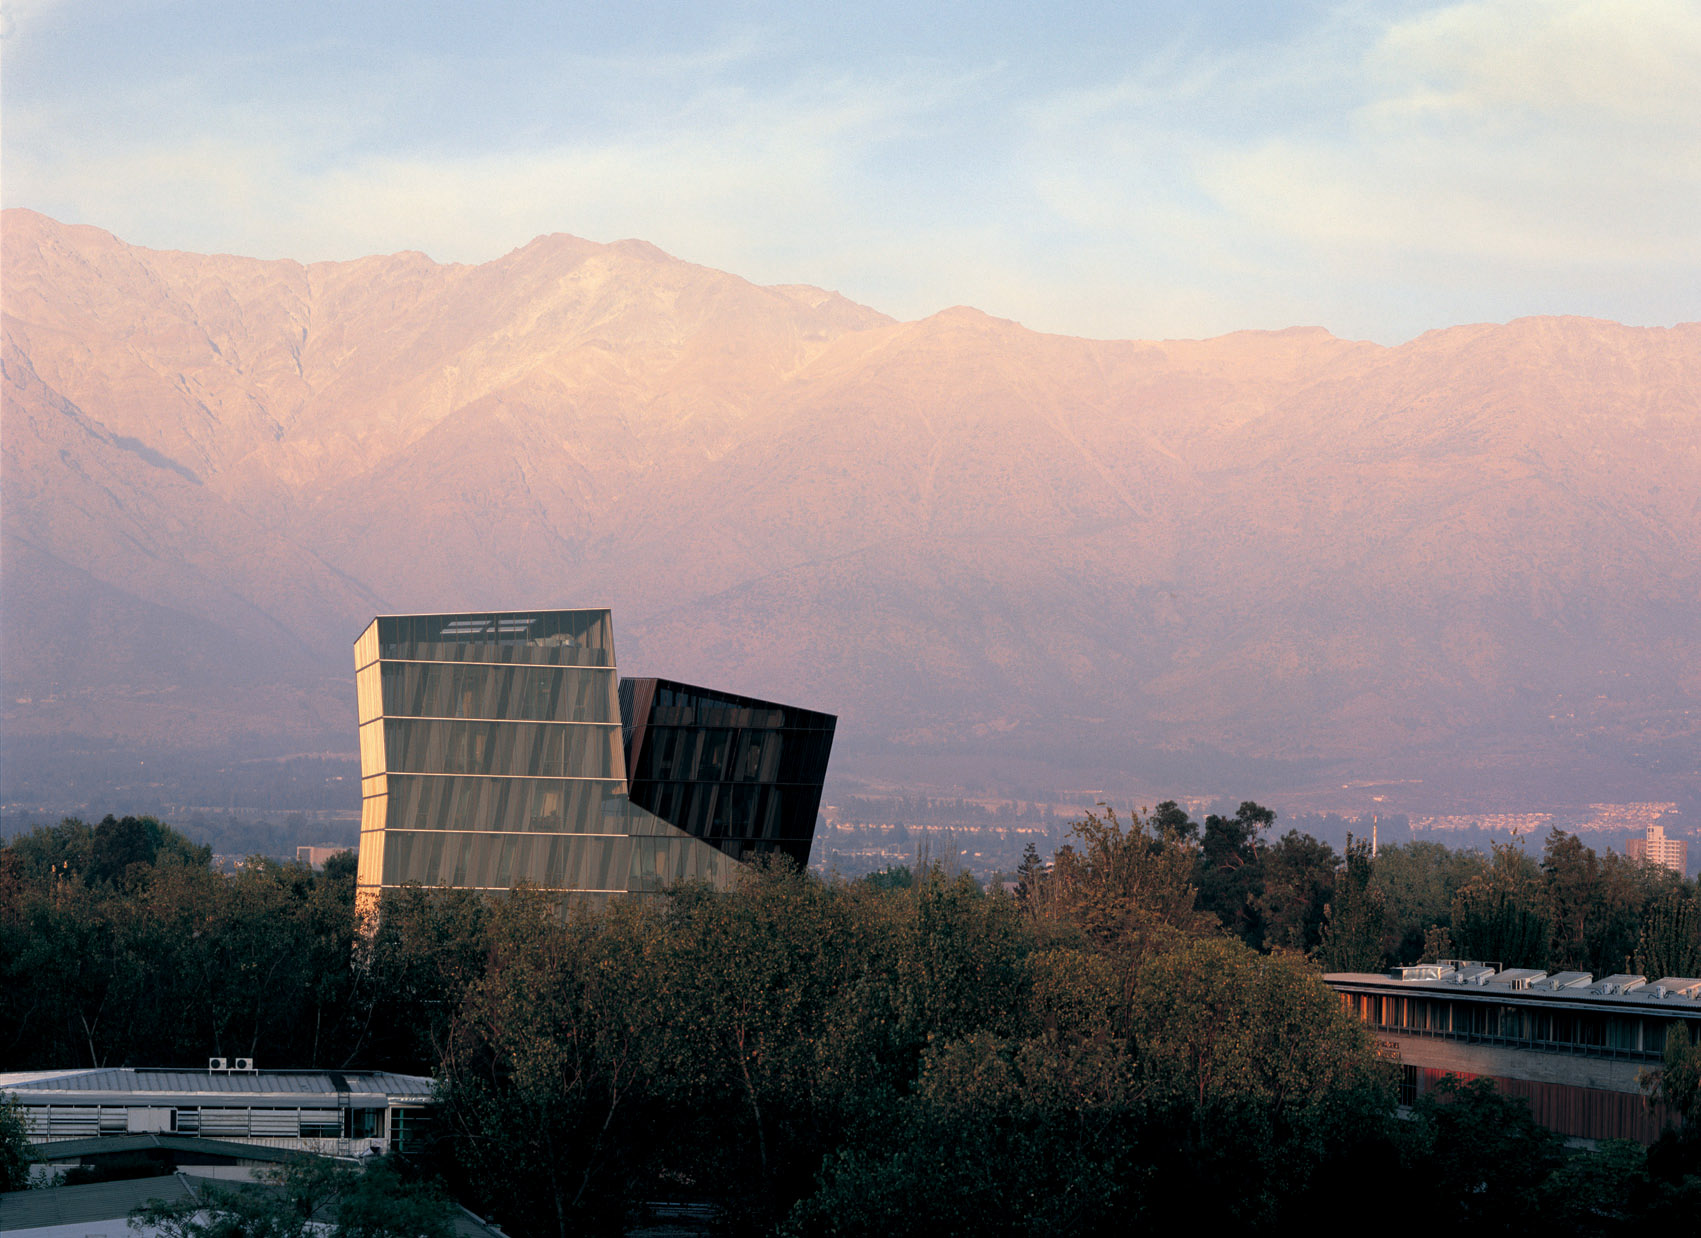 Siamese Towers, 2005, San Joaquín Campus, Universidad Católica de Chile, Santiago, Chile